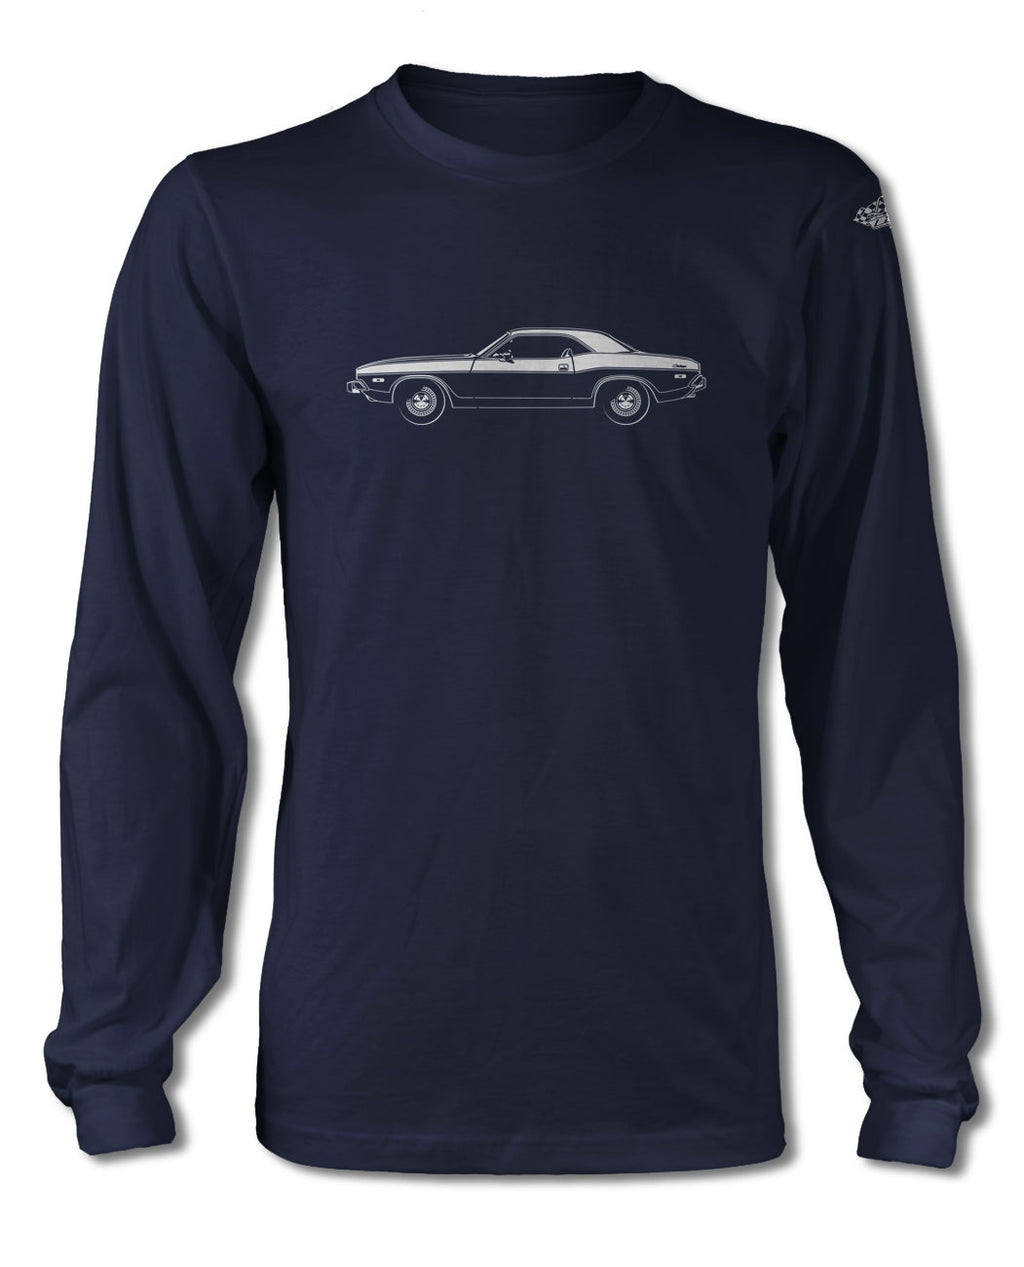 1973 Dodge Challenger Base Coupe T-Shirt - Long Sleeves - Side View